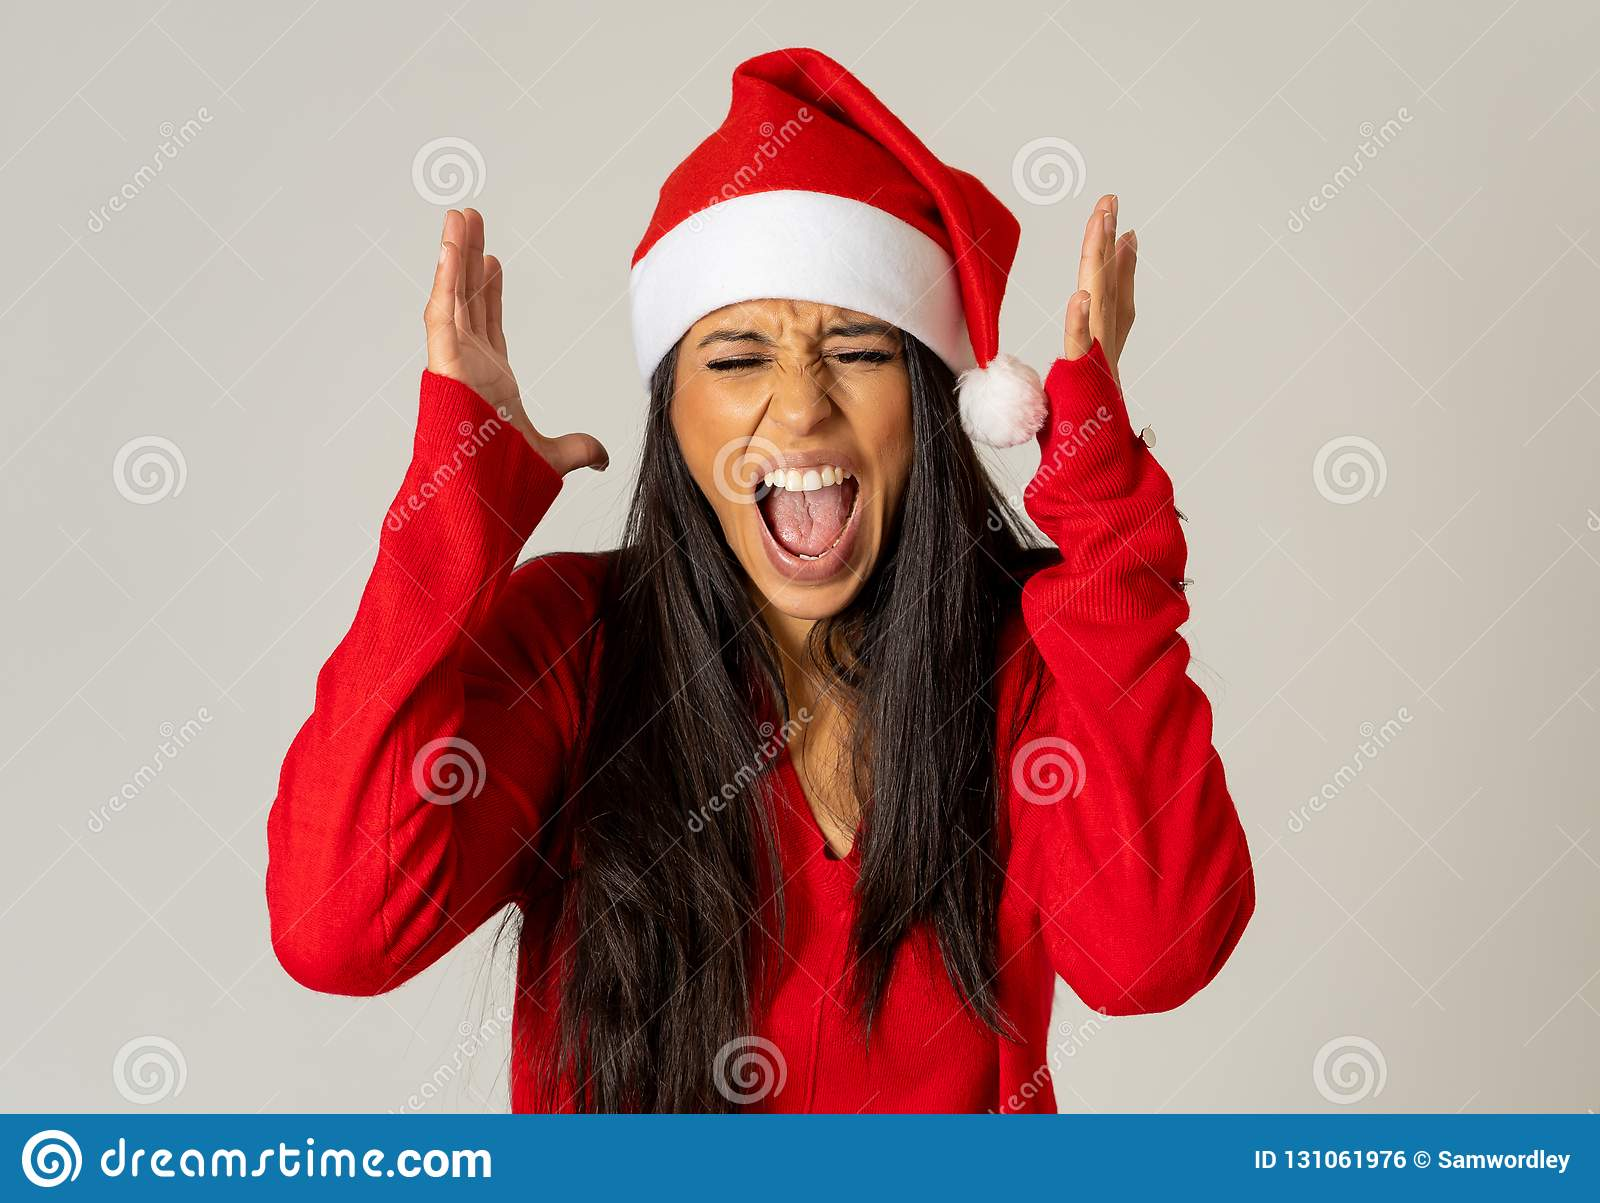 Worried young woman in santa clause hat screaming in stress running out of time for christmas